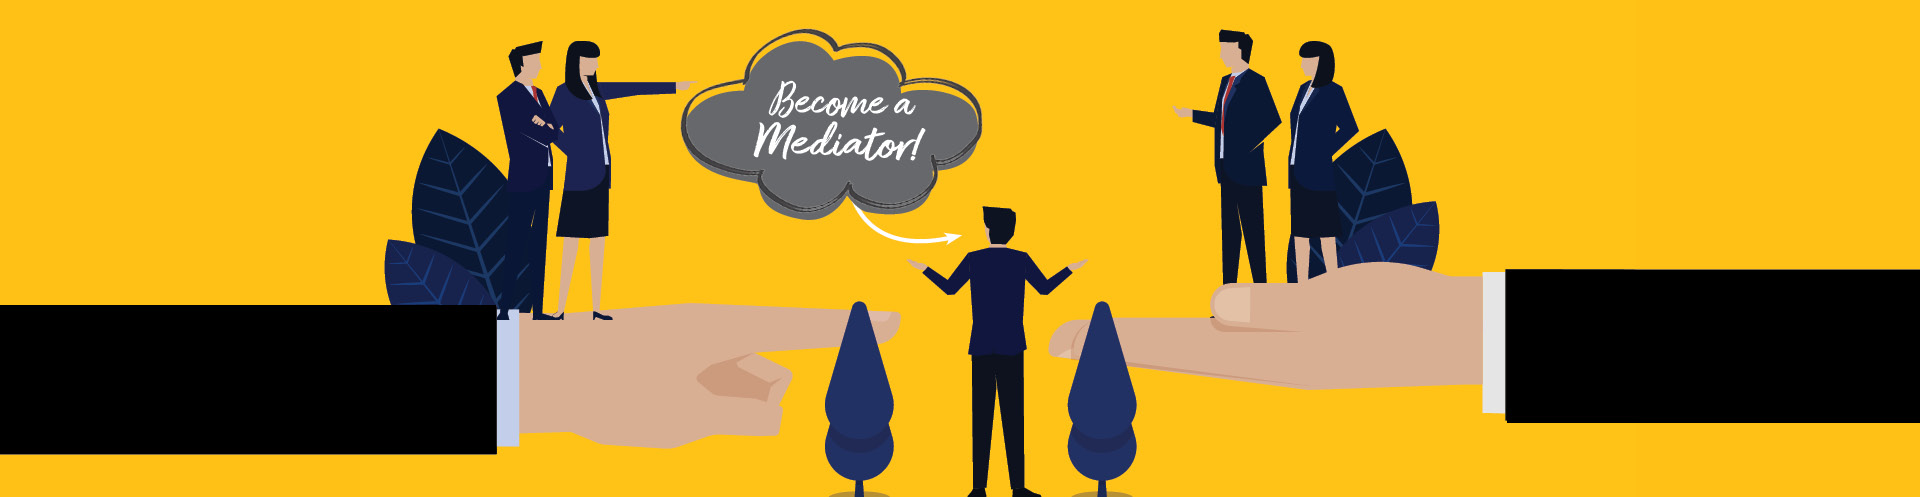 Become a Mediator or Increase your Mediation Skills